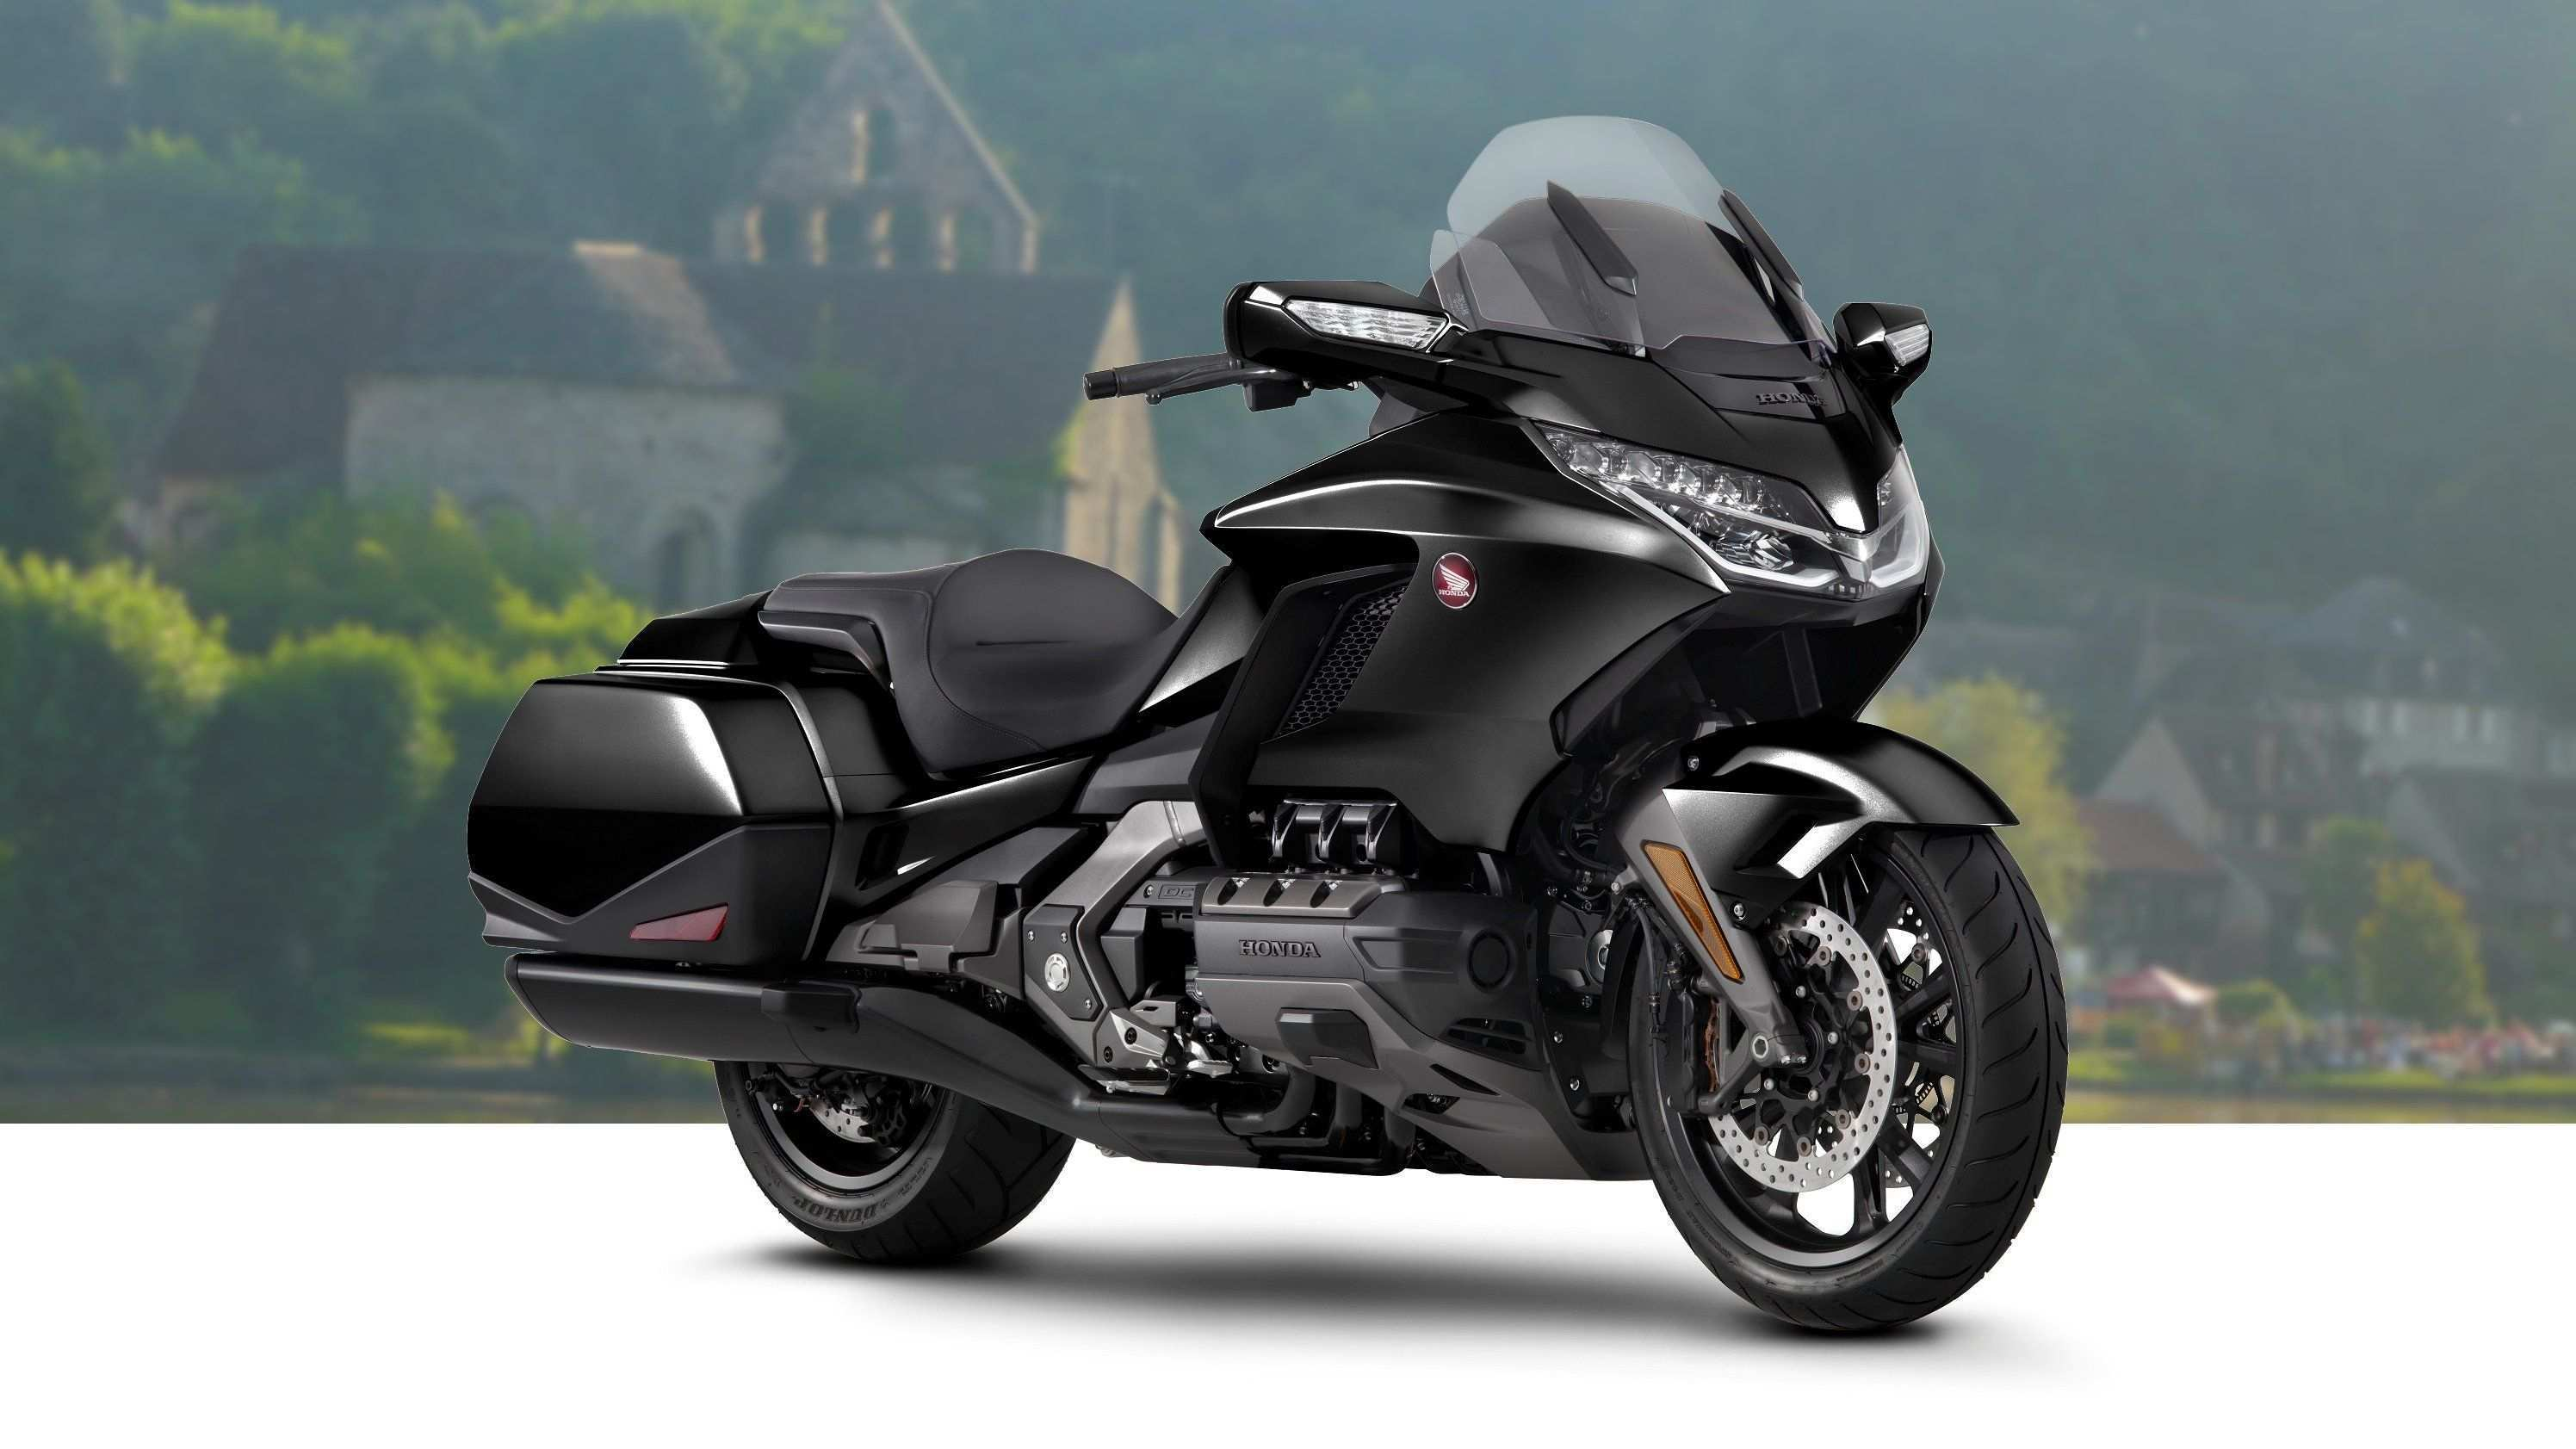 30 Best Review 2020 Honda Goldwing Exterior First Drive for 2020 Honda Goldwing Exterior